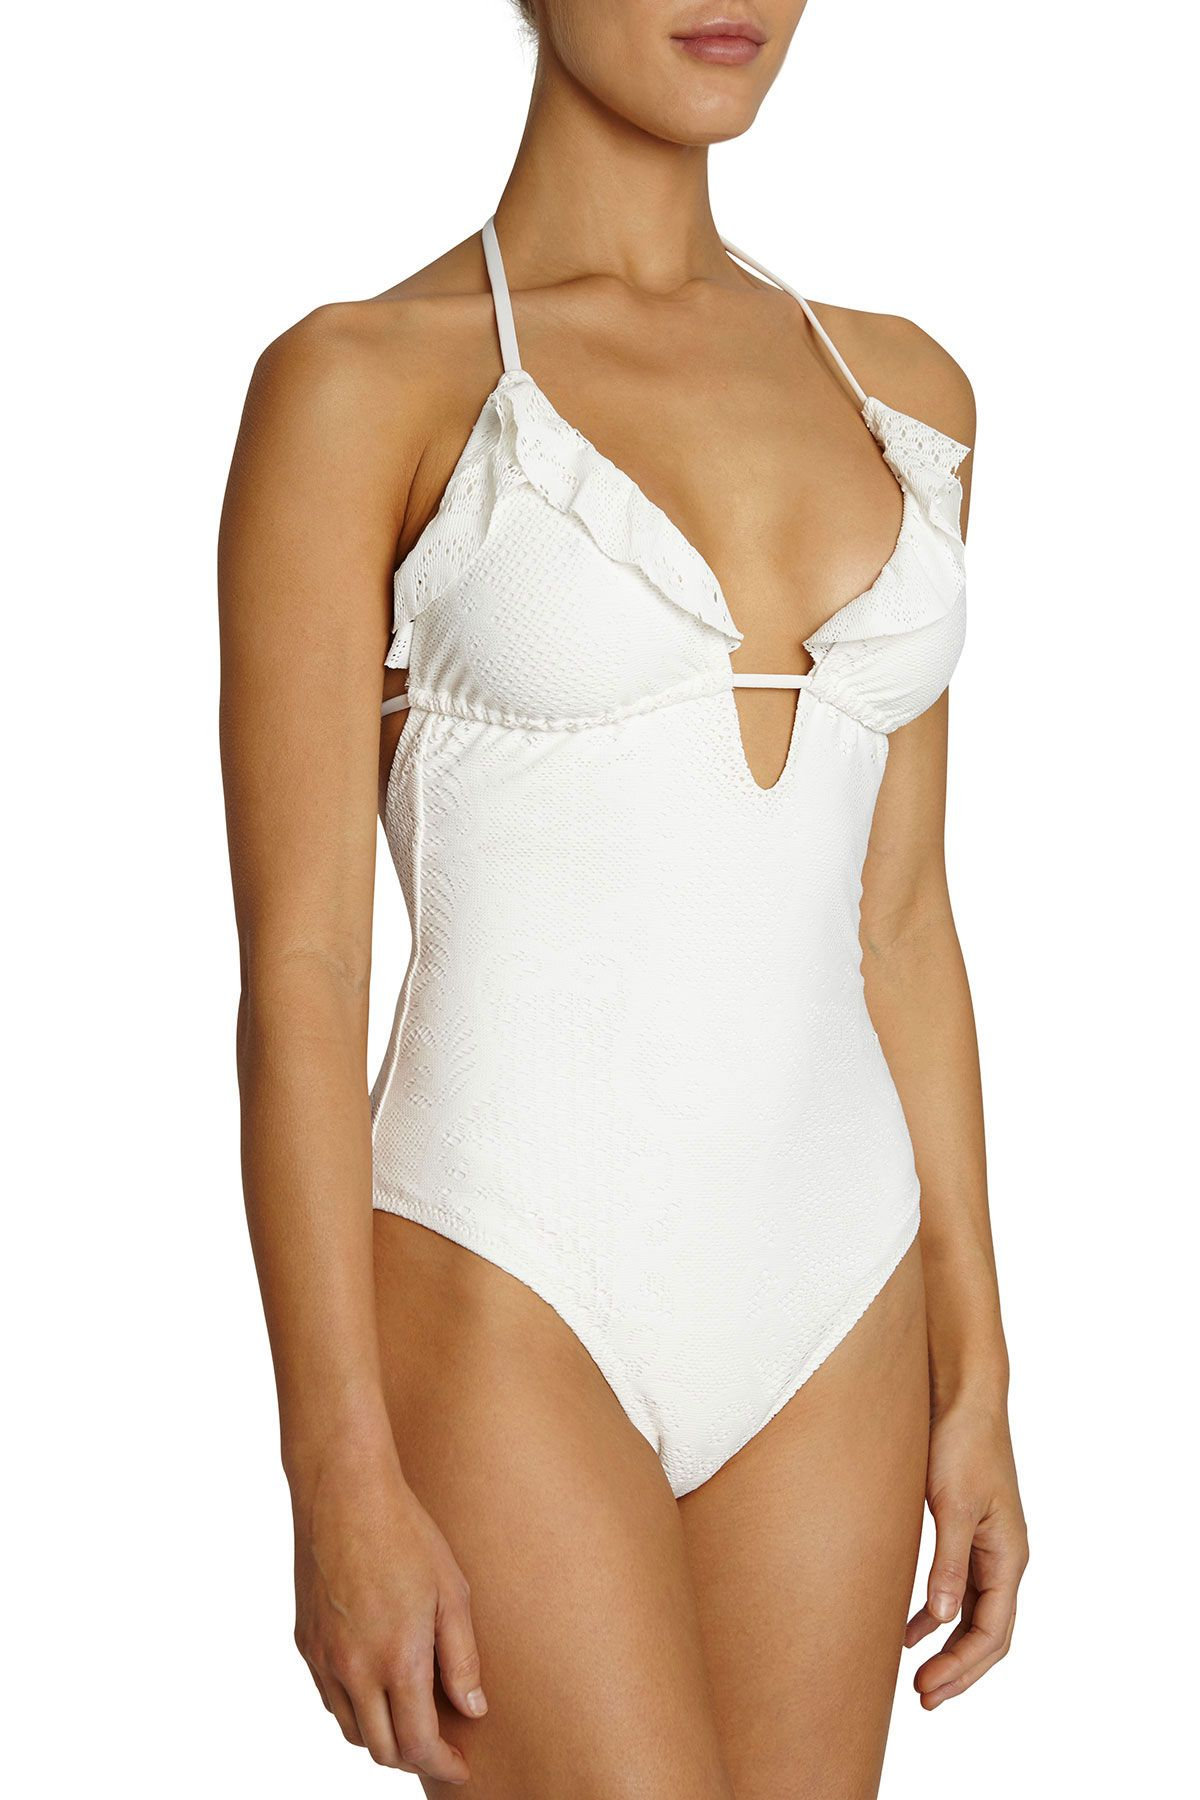 Eberjey Womens Playa Del Coco Waverly One Piece Swimsuit